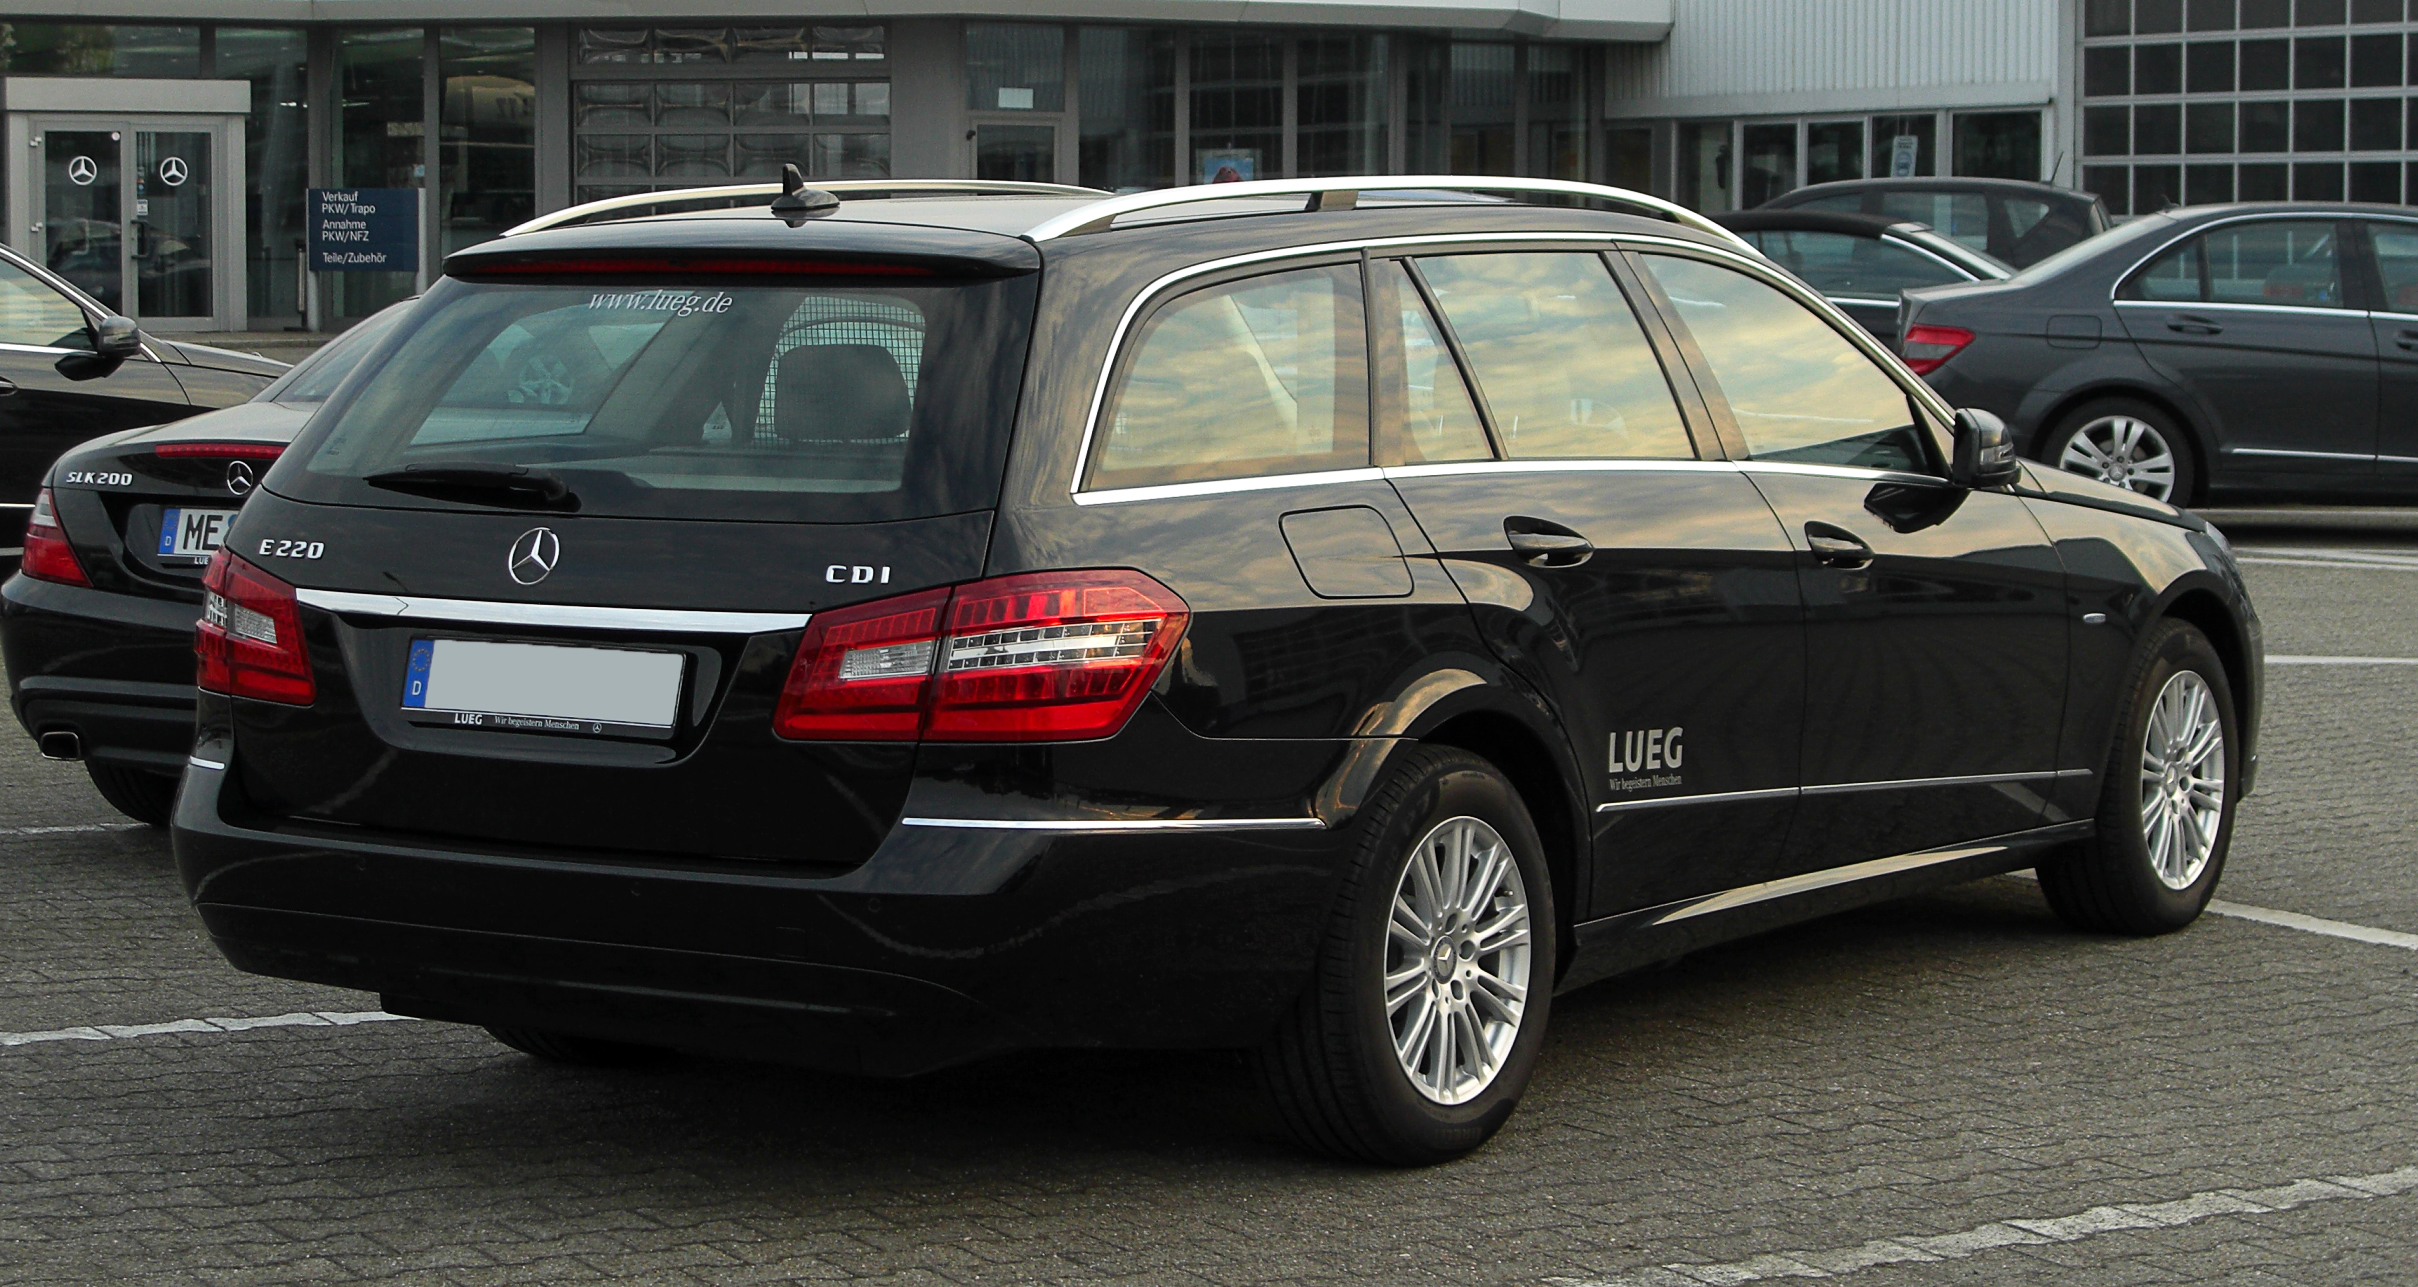 file:mercedes-benz e 220 cdi blueefficiency t-modell elegance (s